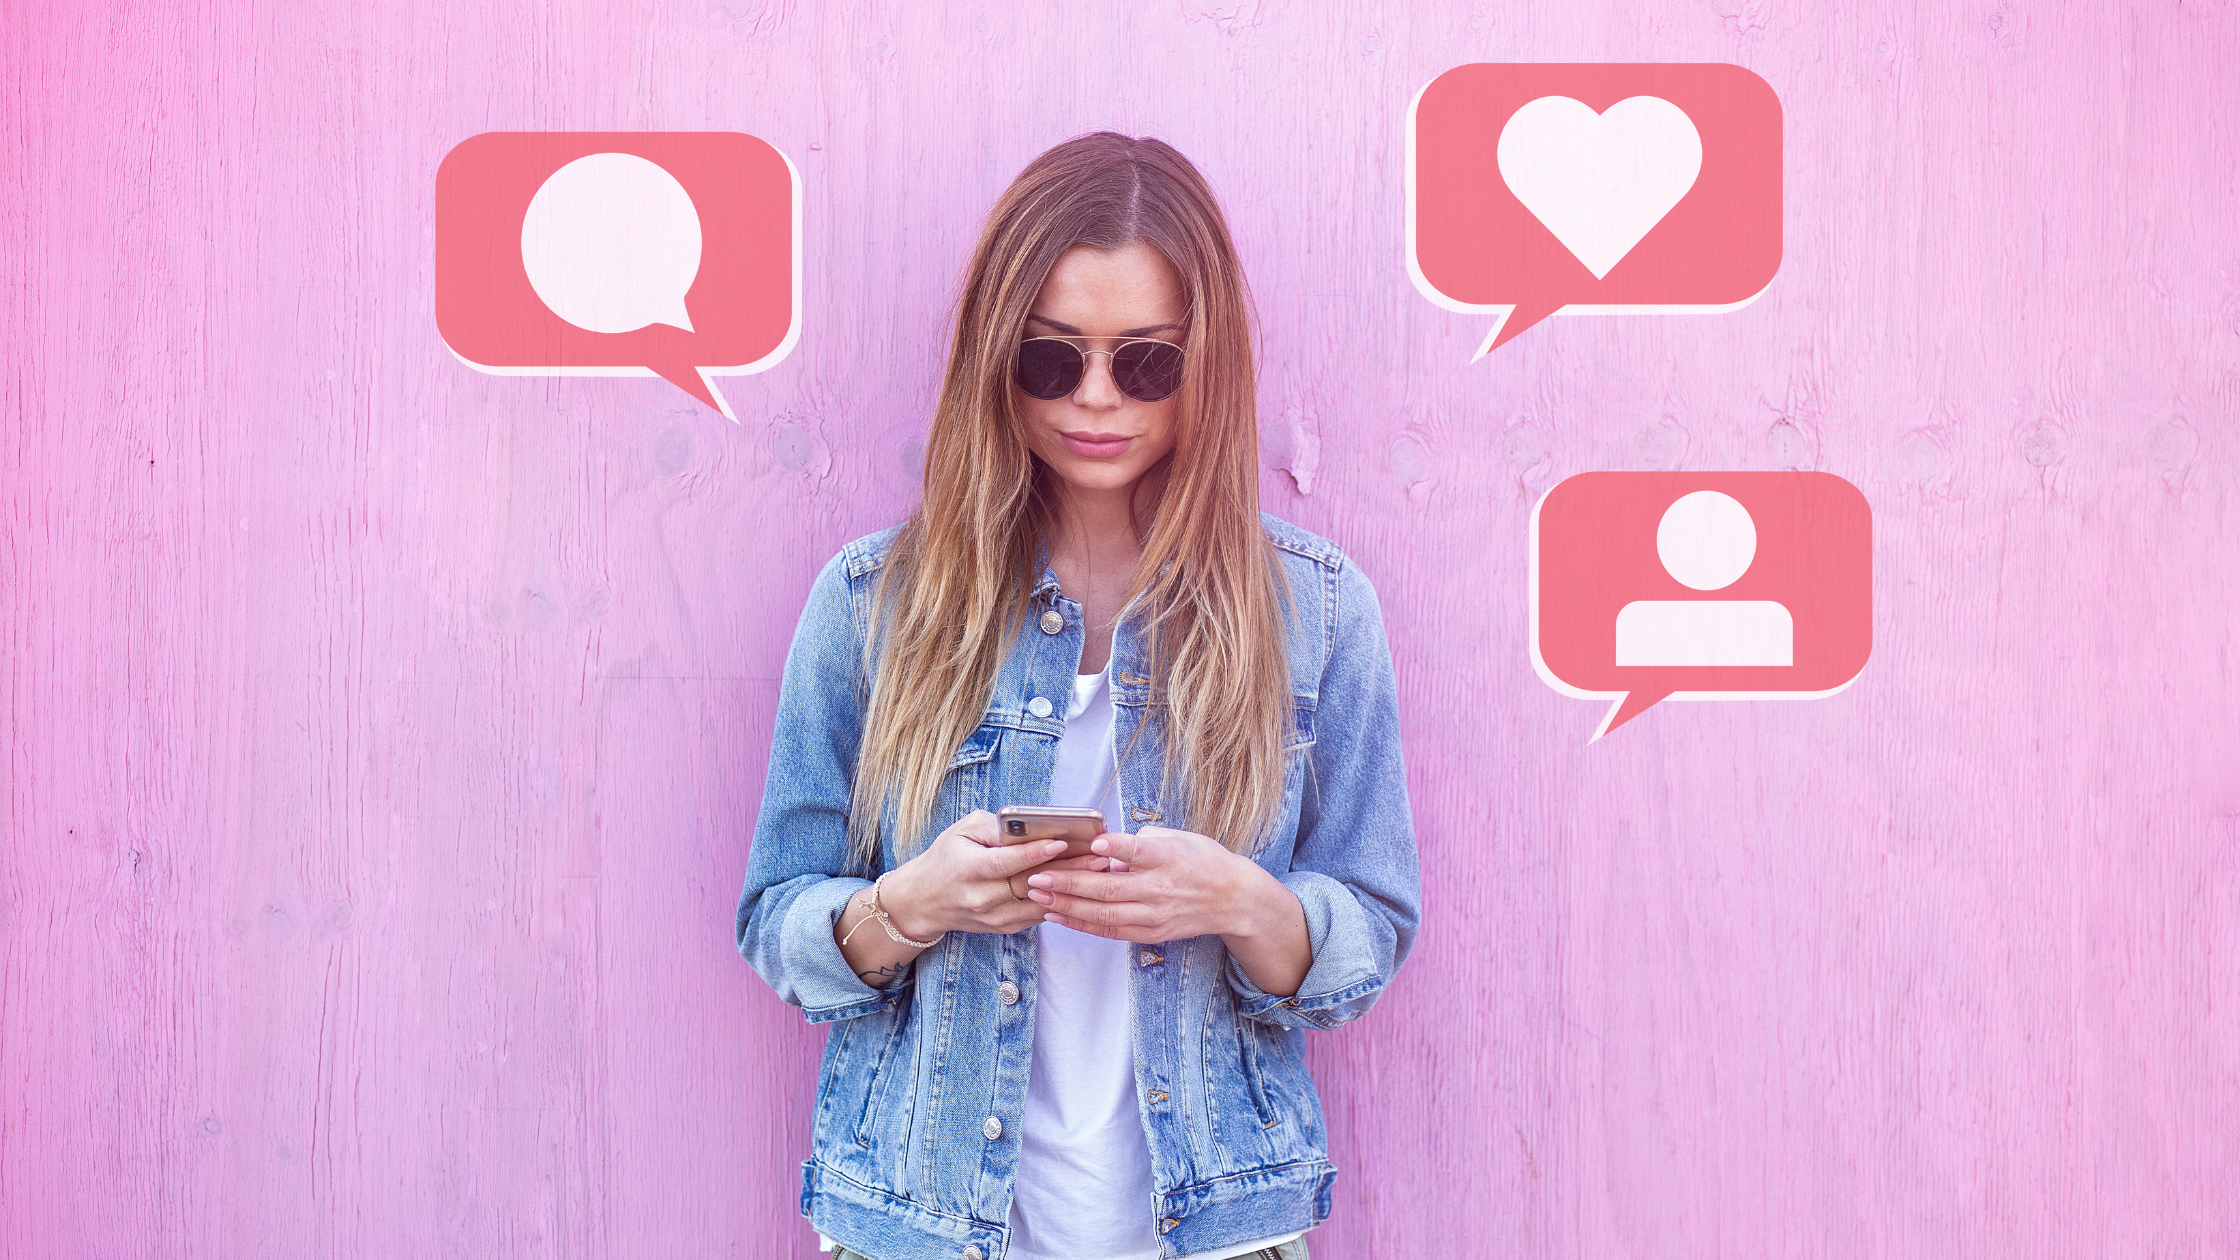 How to Find the Right Influencers for Your Brand